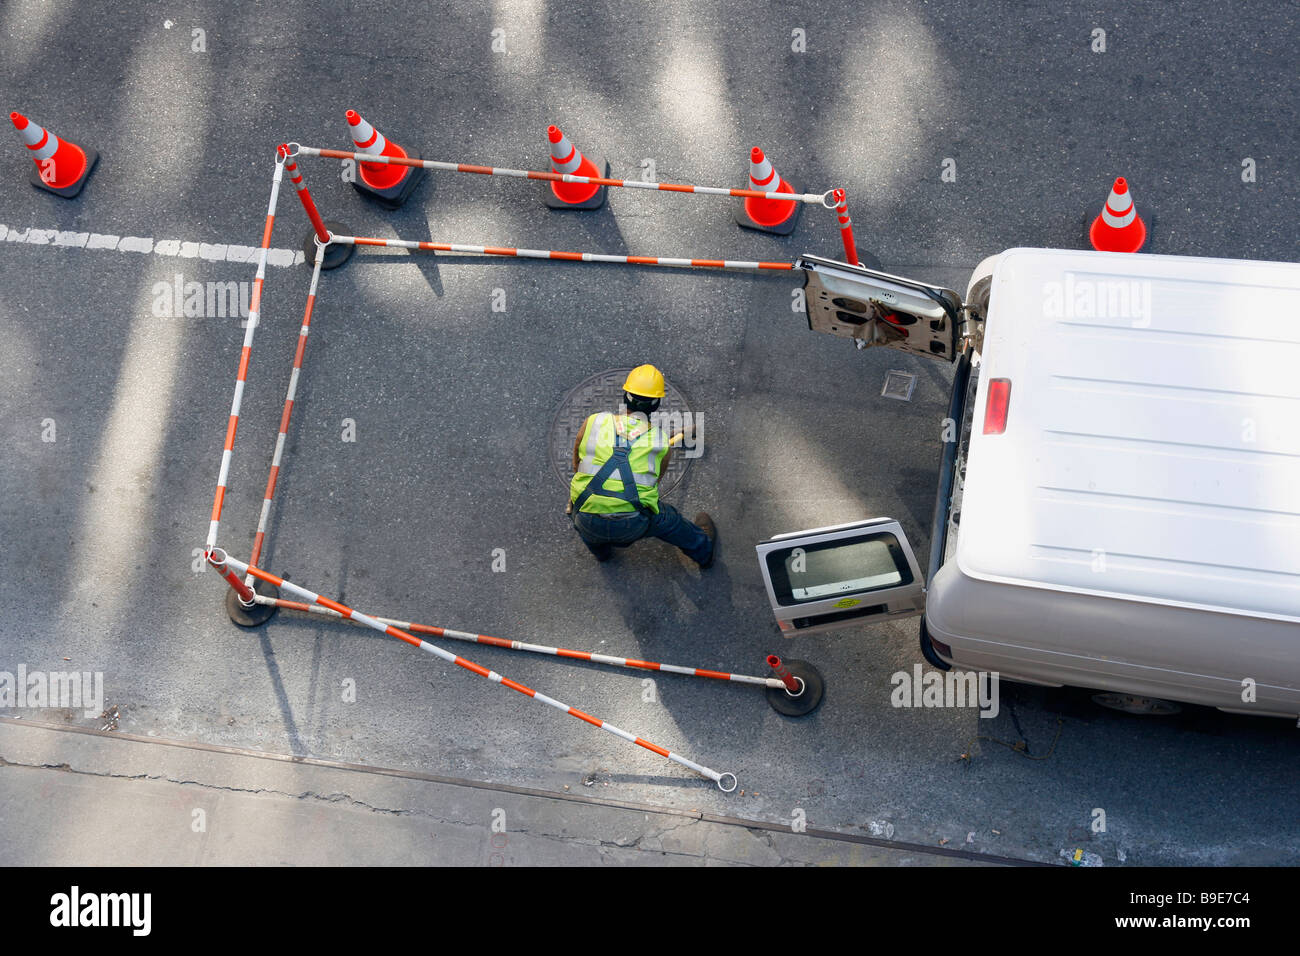 Maintenance worker closing a manhole cover with a mallet. - Stock Image